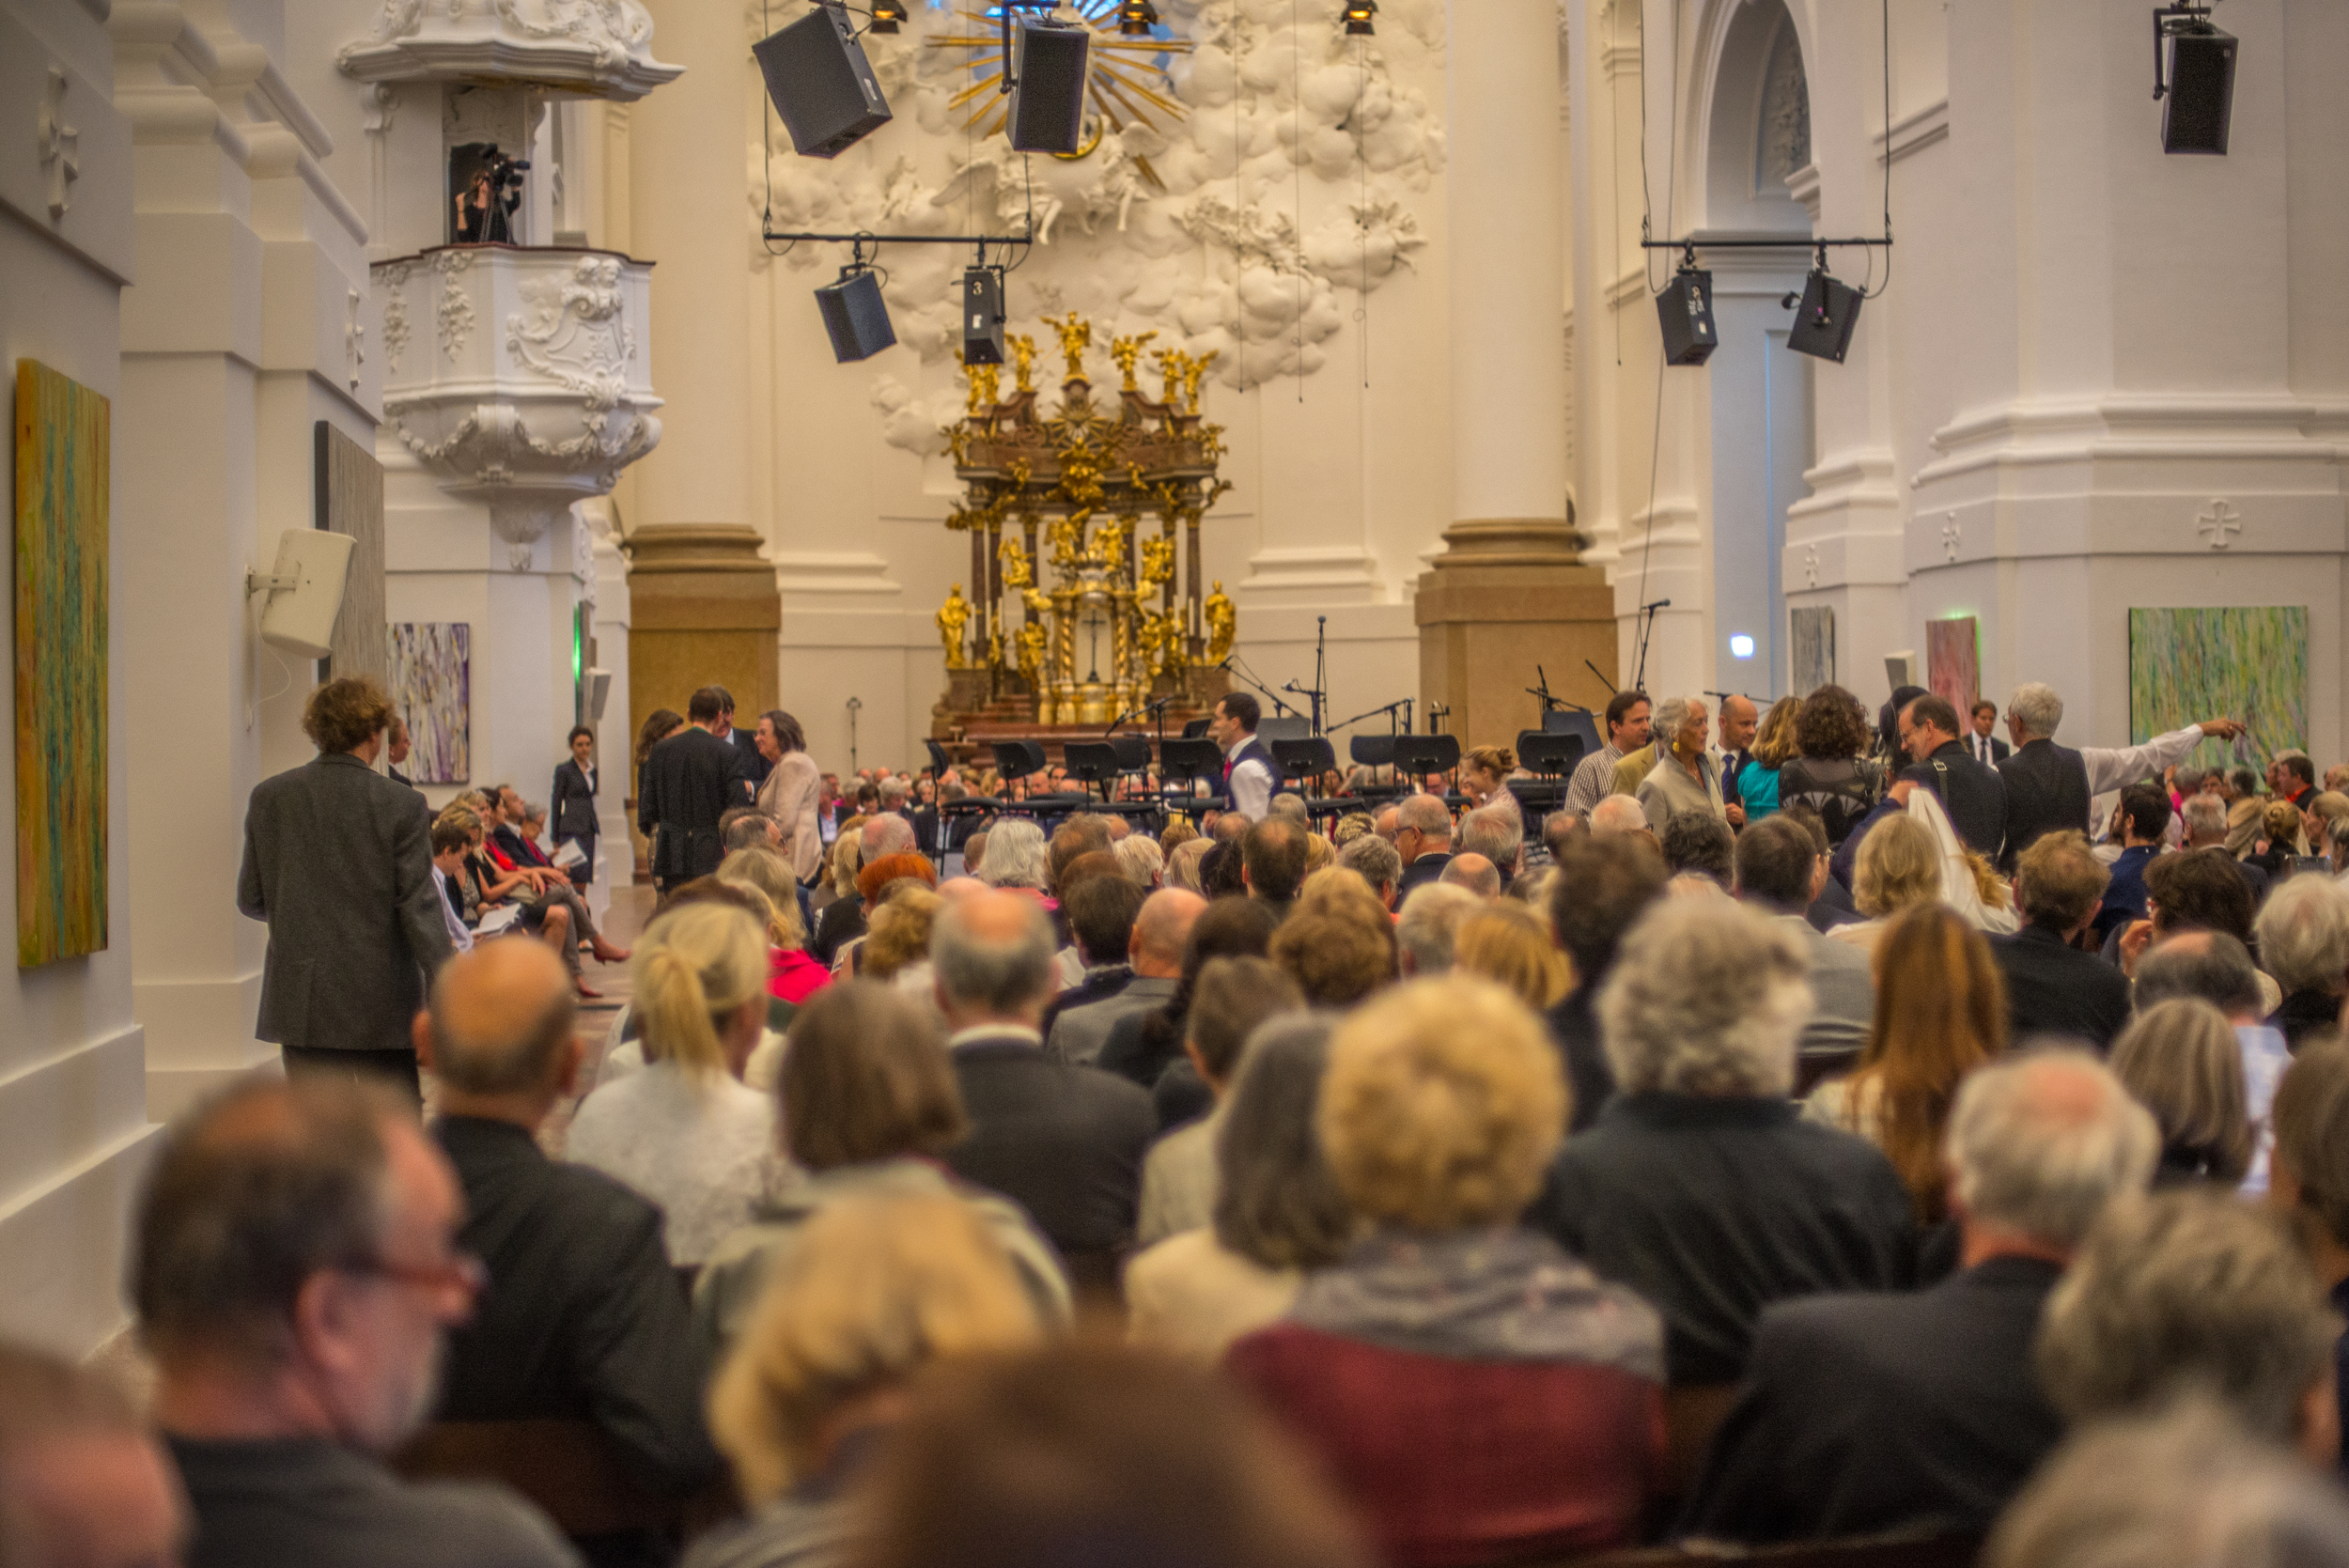 The Kollegienkirche Salzburg hosts one of the first events of the Salzburg Festival with a sold out crowd in attendance. Susan's paintings line the walls from the front entrance, all the way up to the altar.